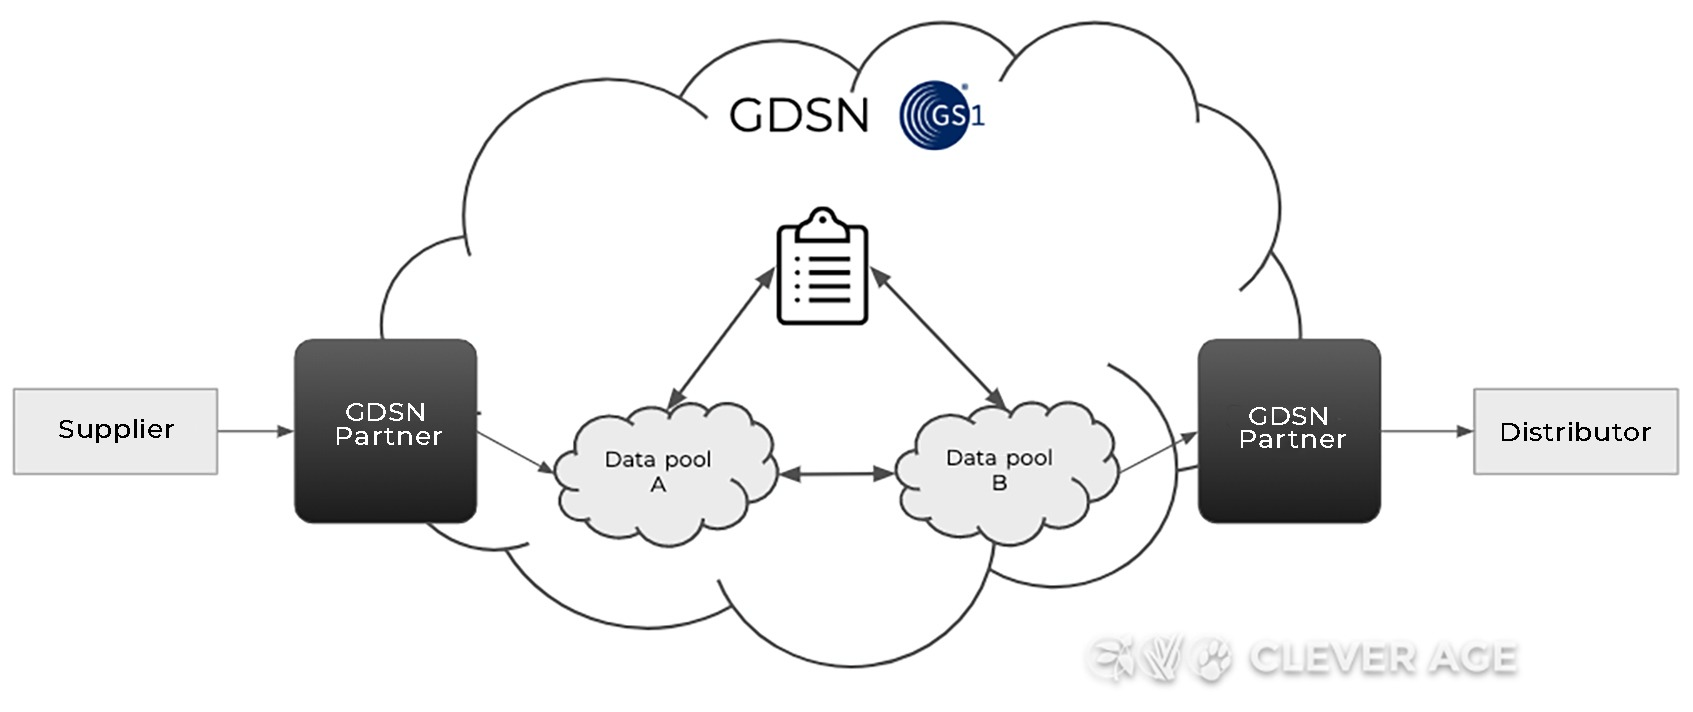 Diagram of a GDSN architecture with connection via a partner